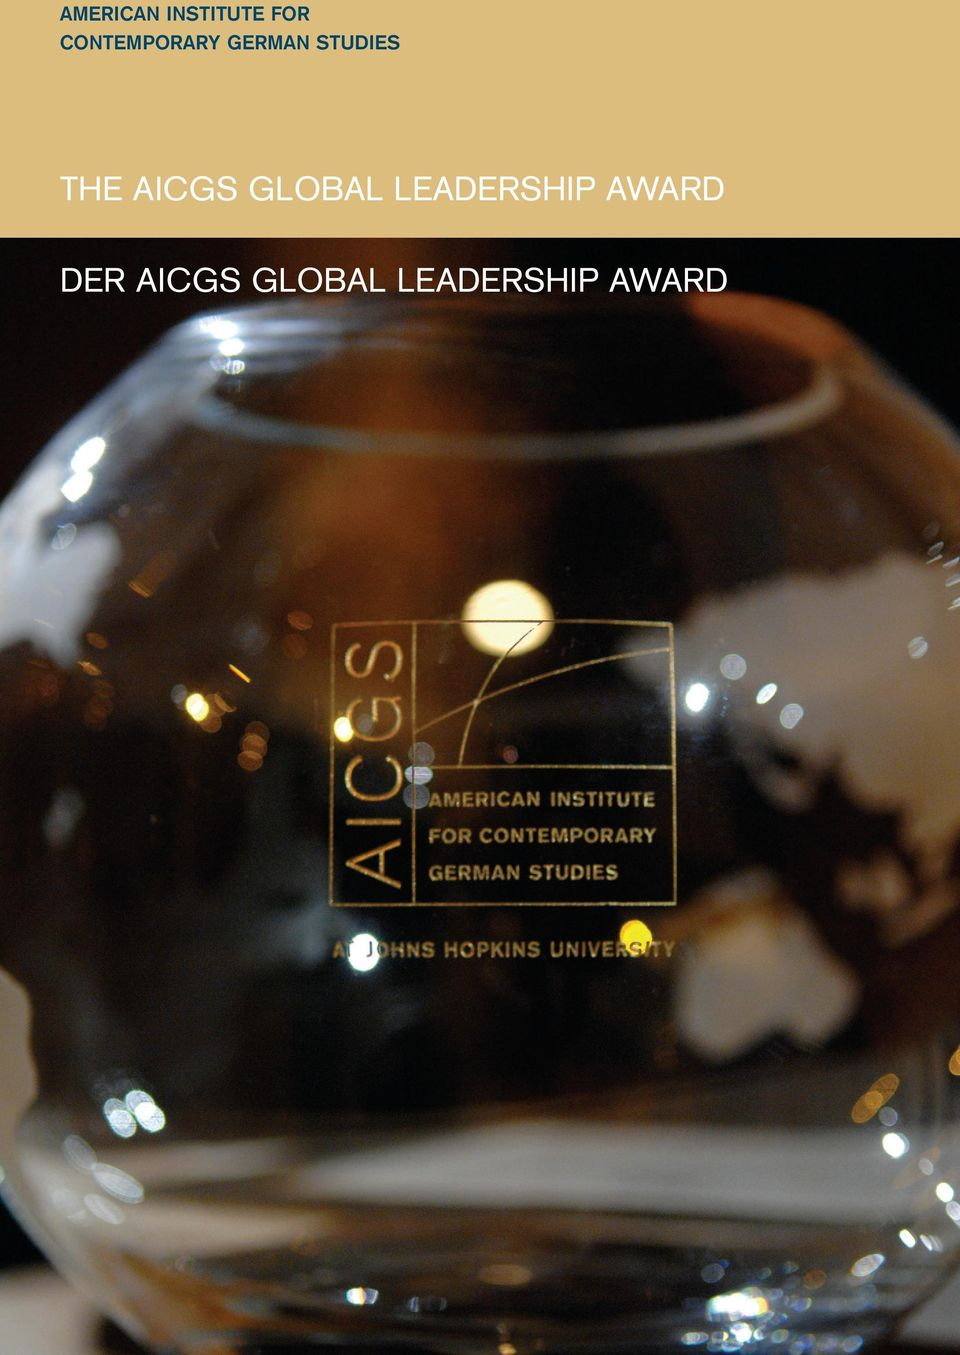 THE AICGS GLOBAL LEADERSHIP